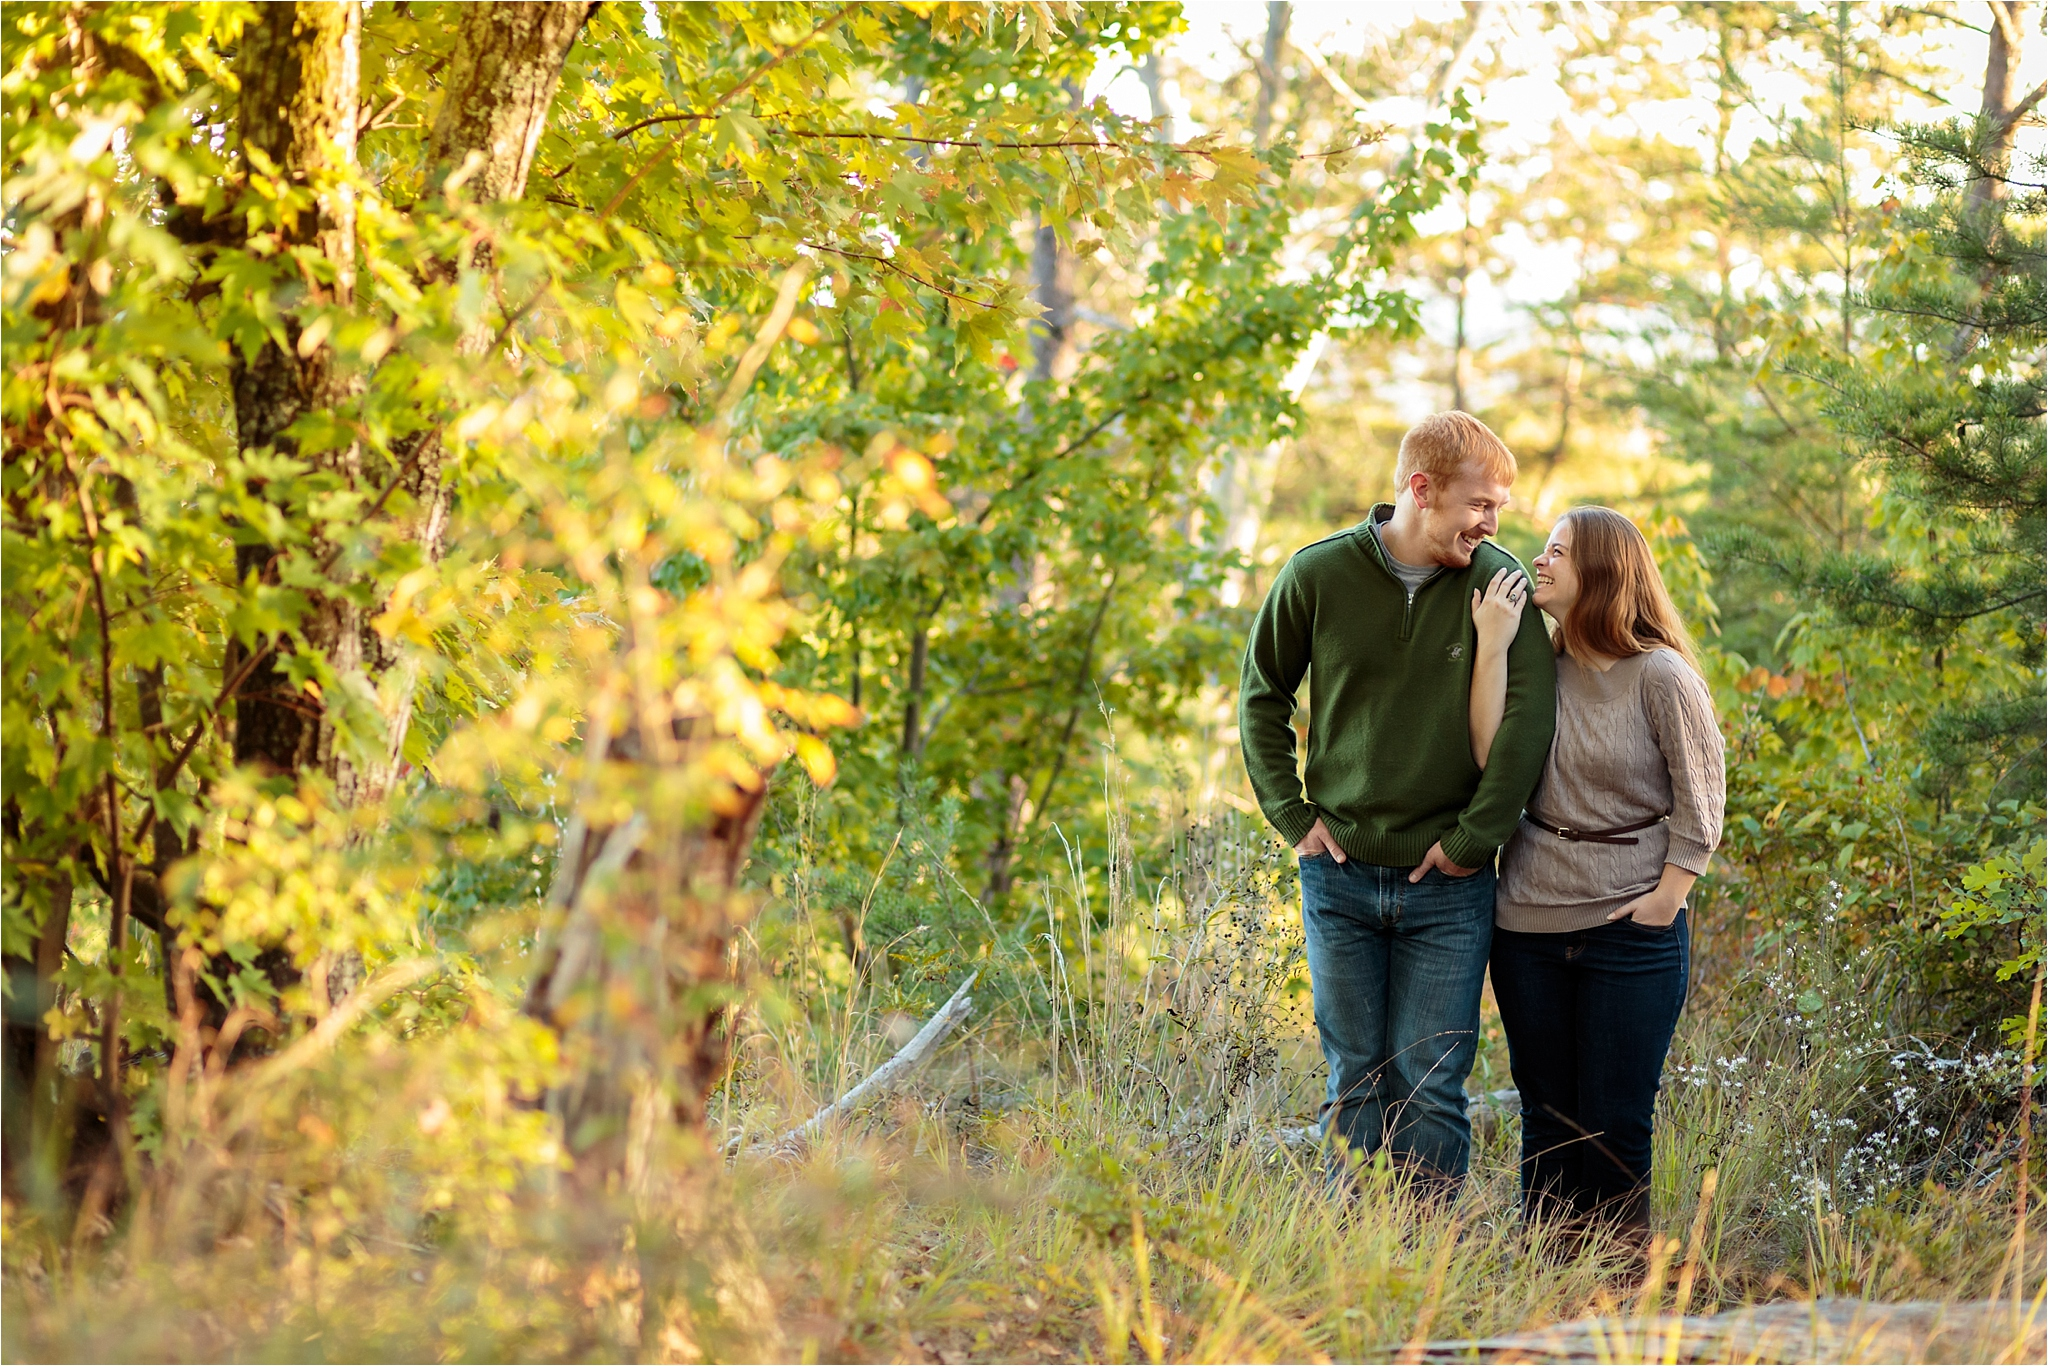 caesars-head-engagement-shoot-18_blog.jpg